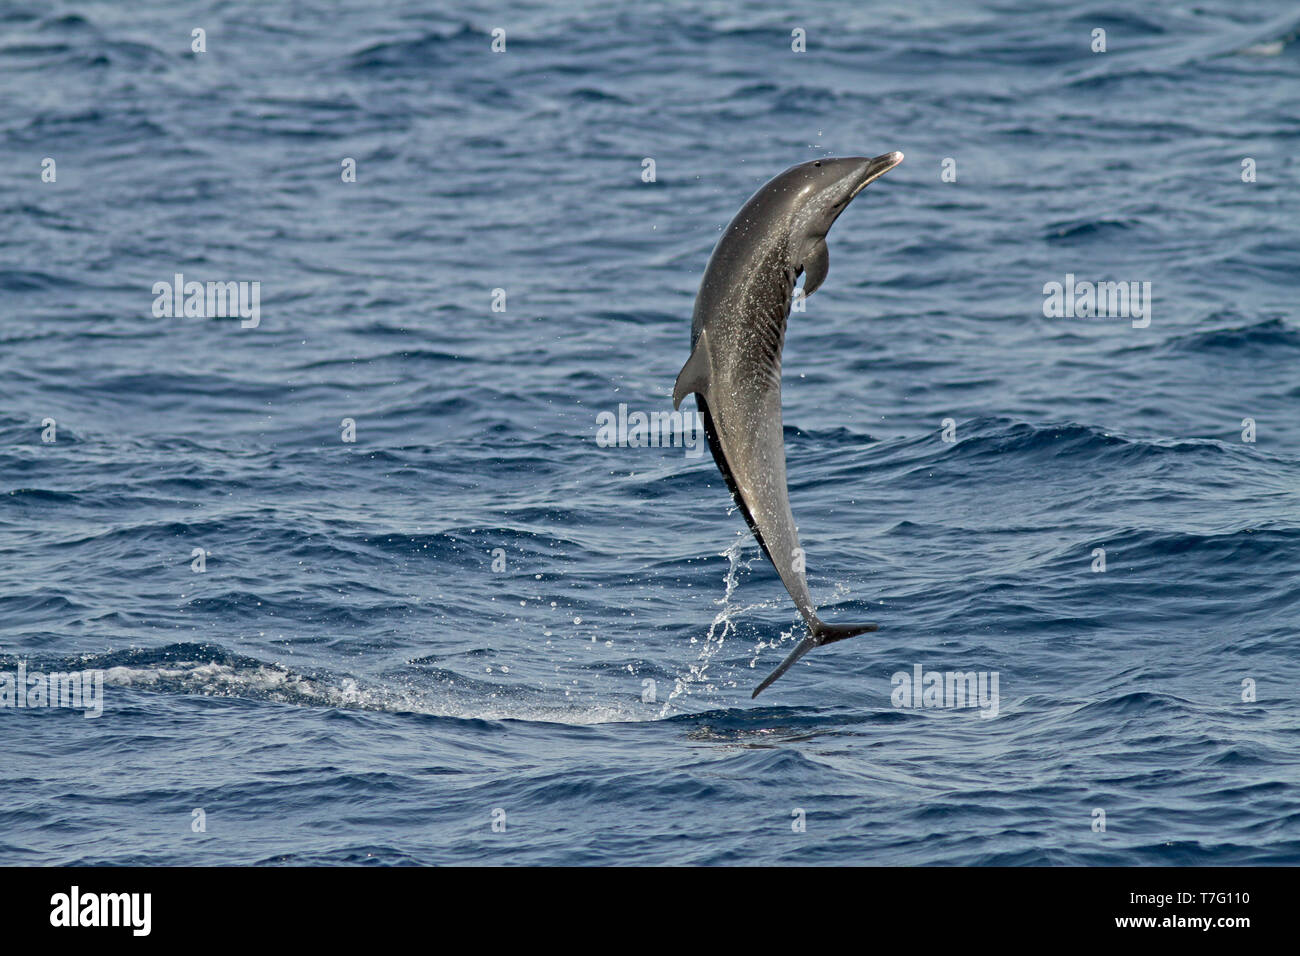 Pantropical spotted dolphin (Stenella attenuata) jumping out of the water - Stock Image